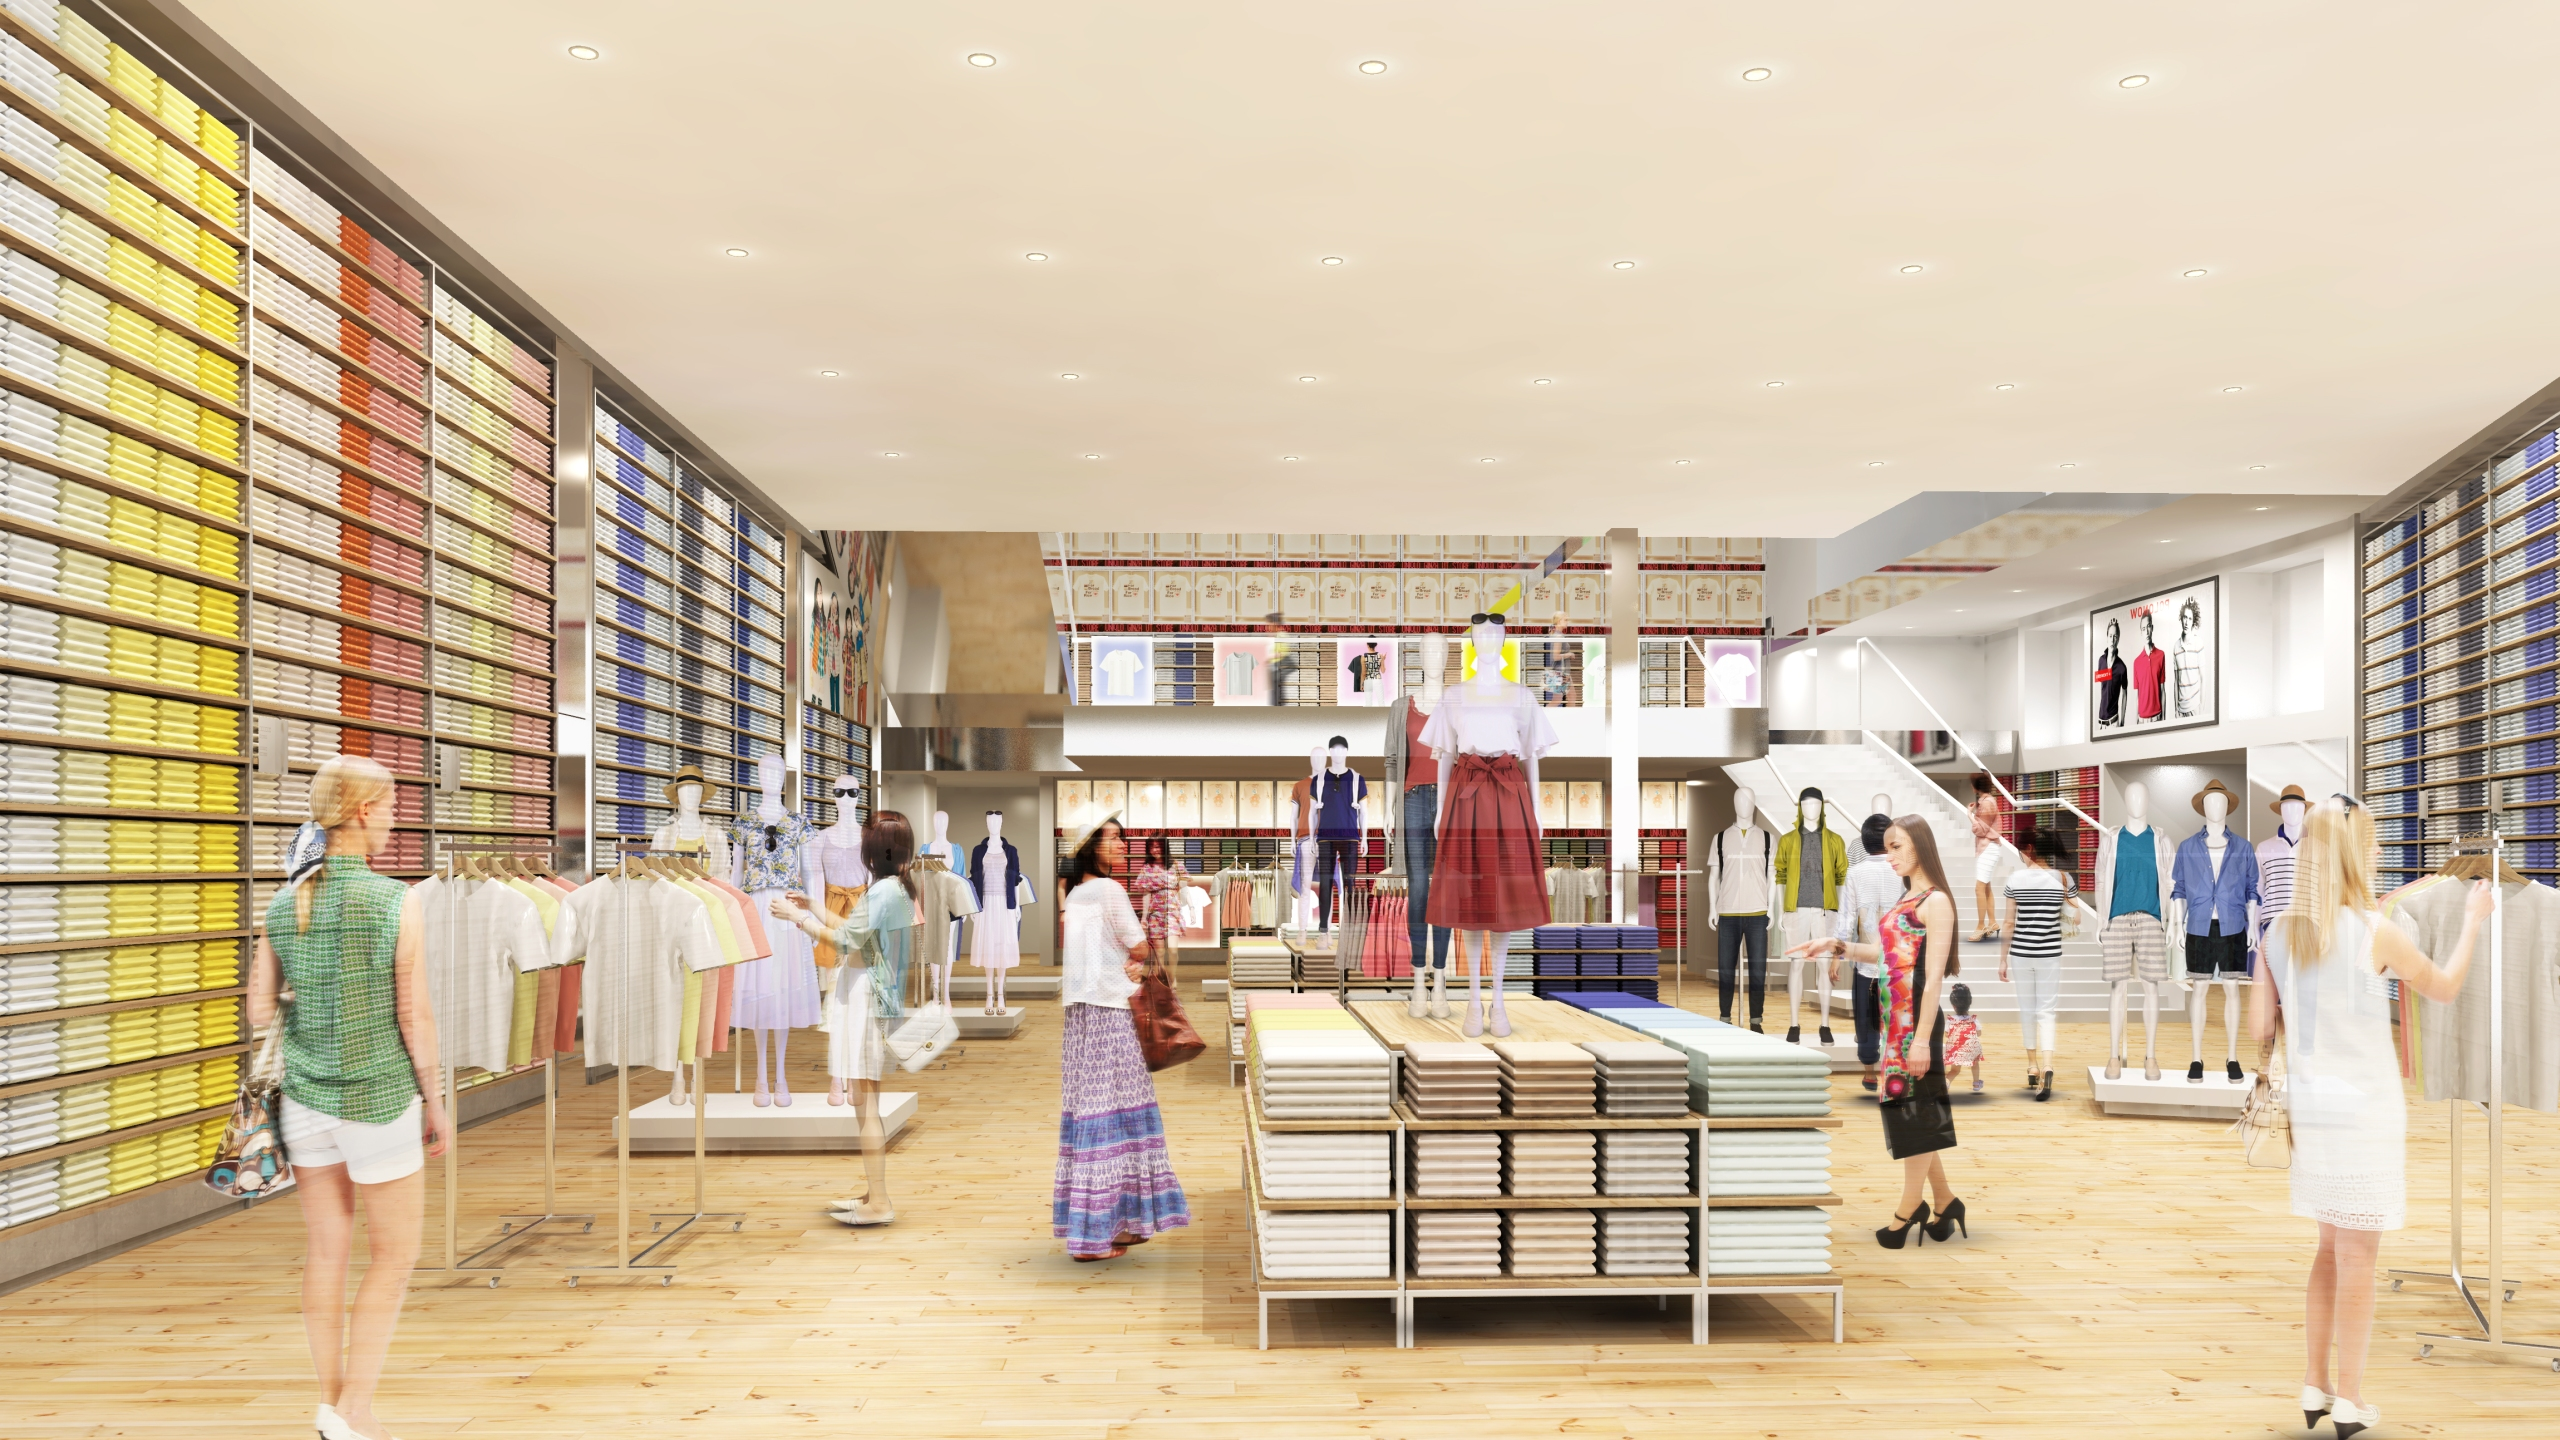 UNIQLO Hawaii store rendering